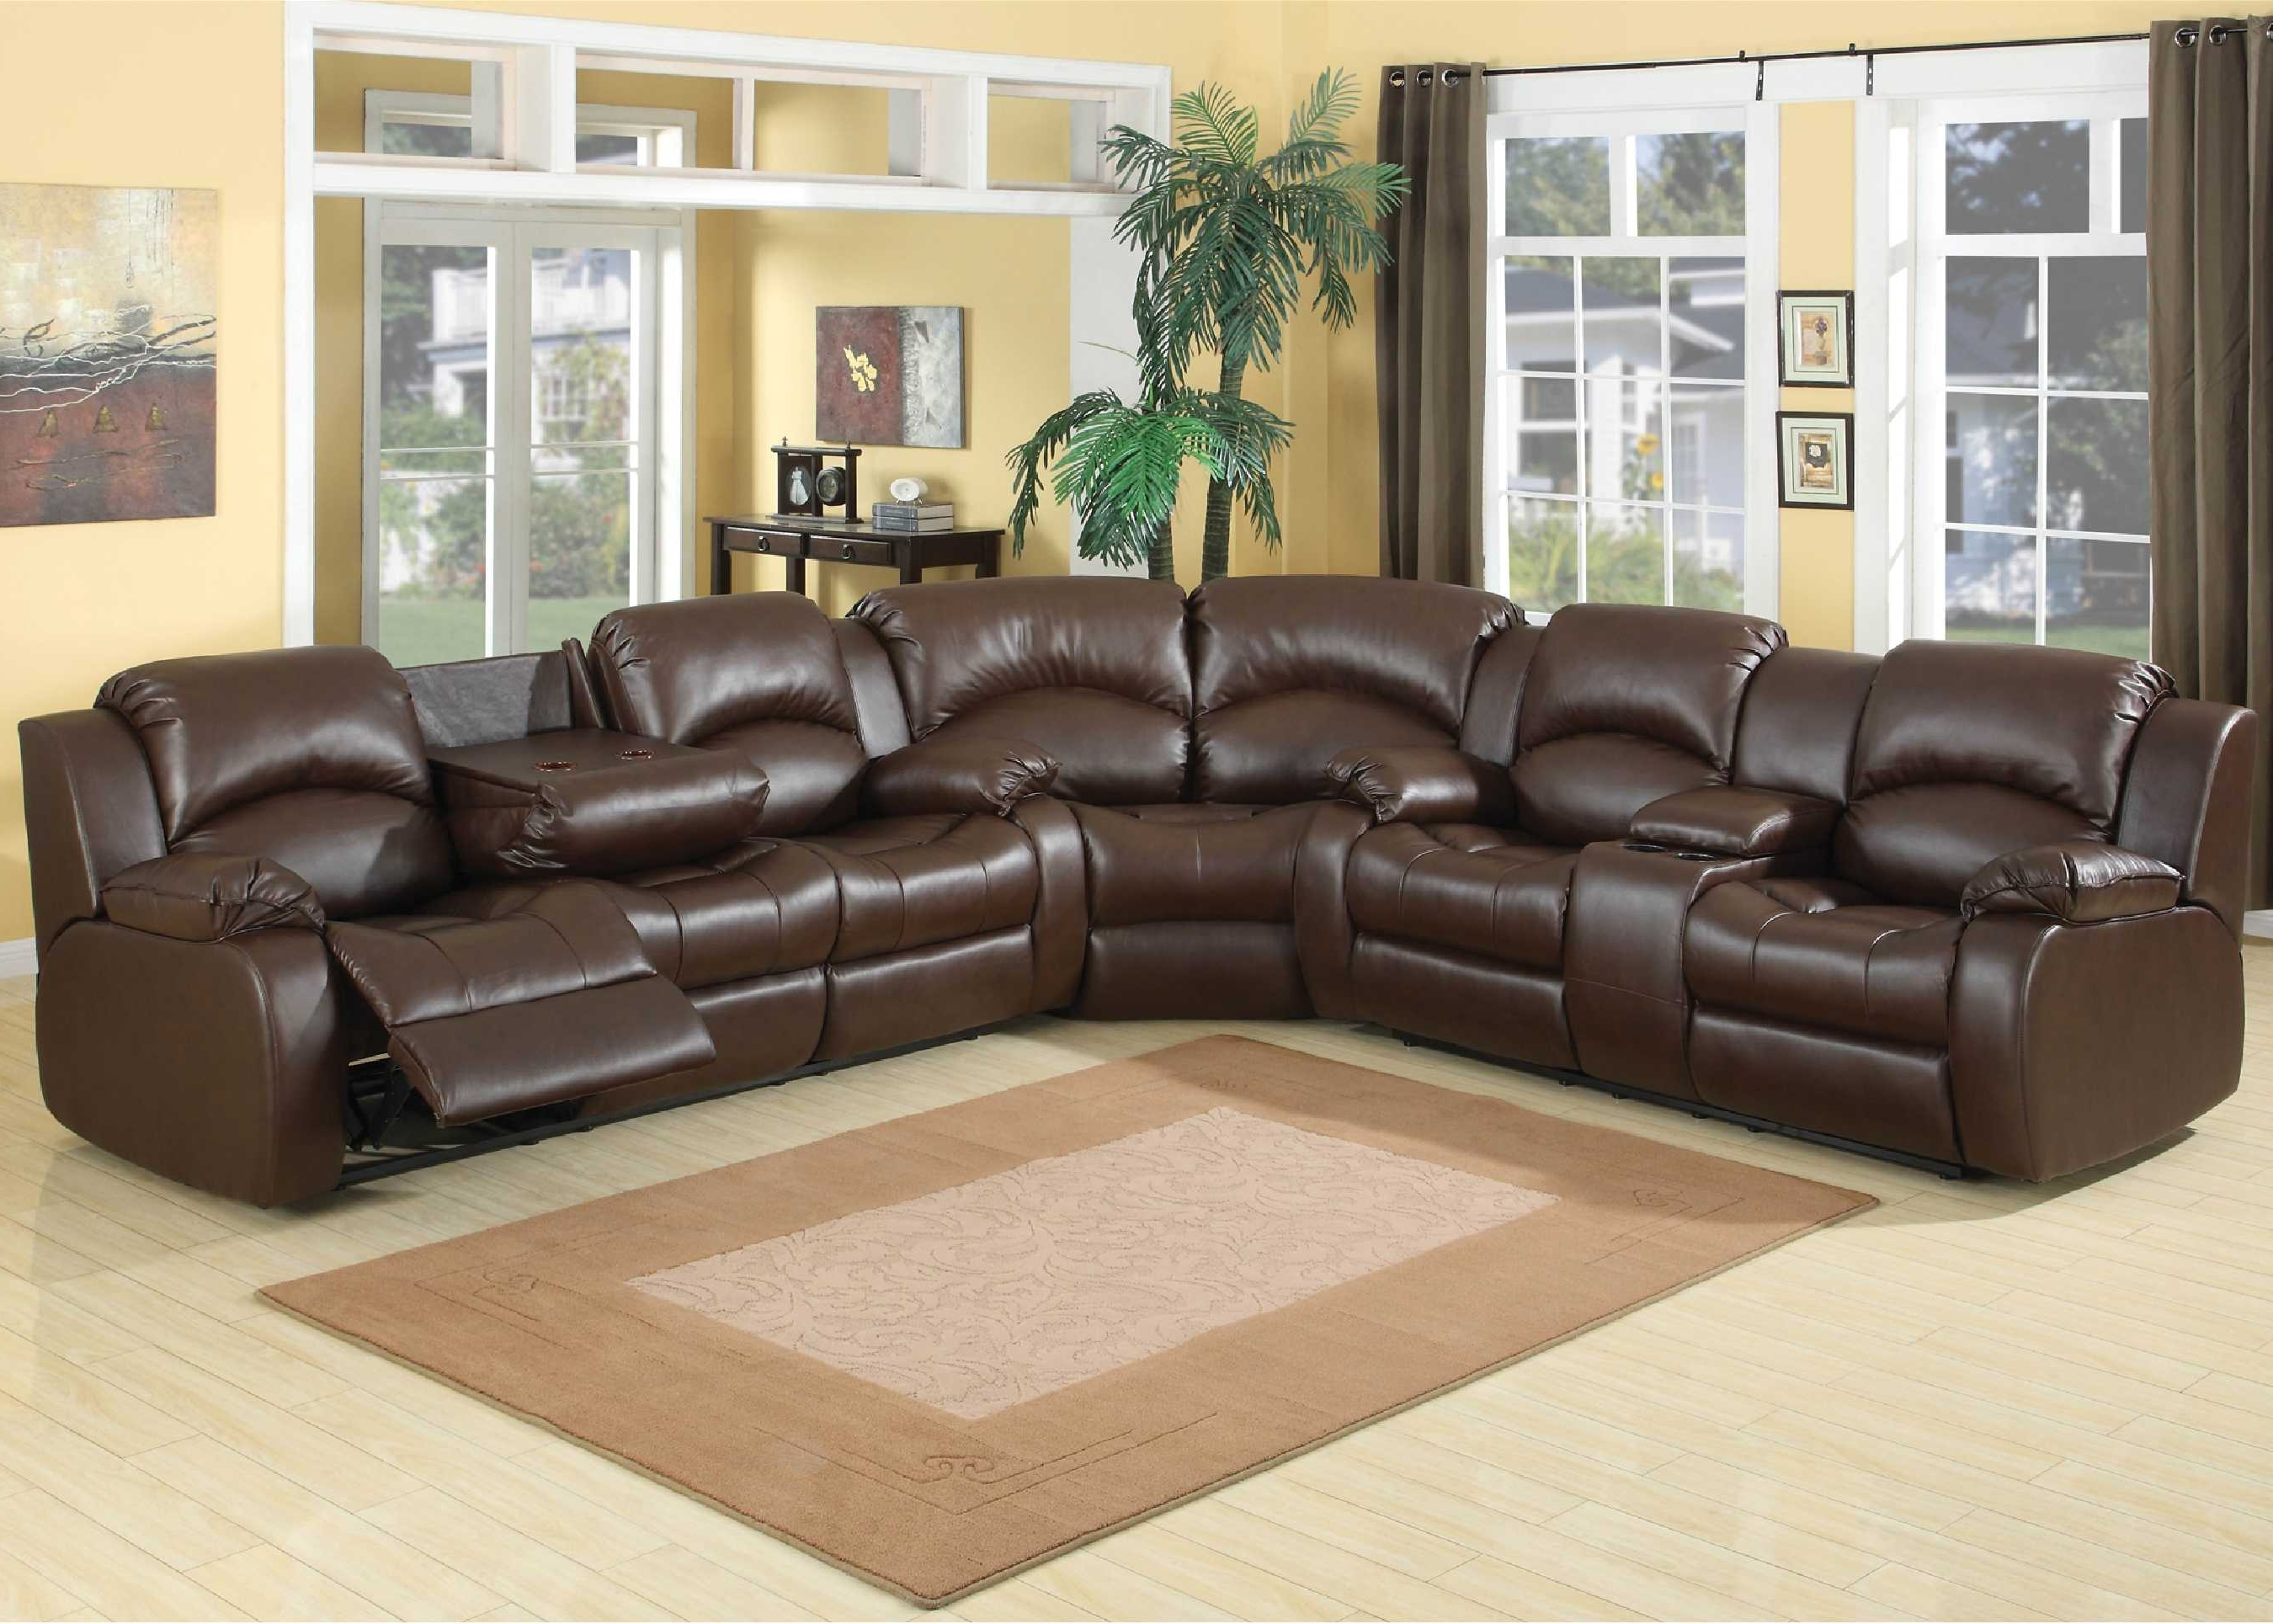 Theatre Sectional Sofas Regarding Latest 16 Theater Sectional Reclining Sofa (View 2 of 20)